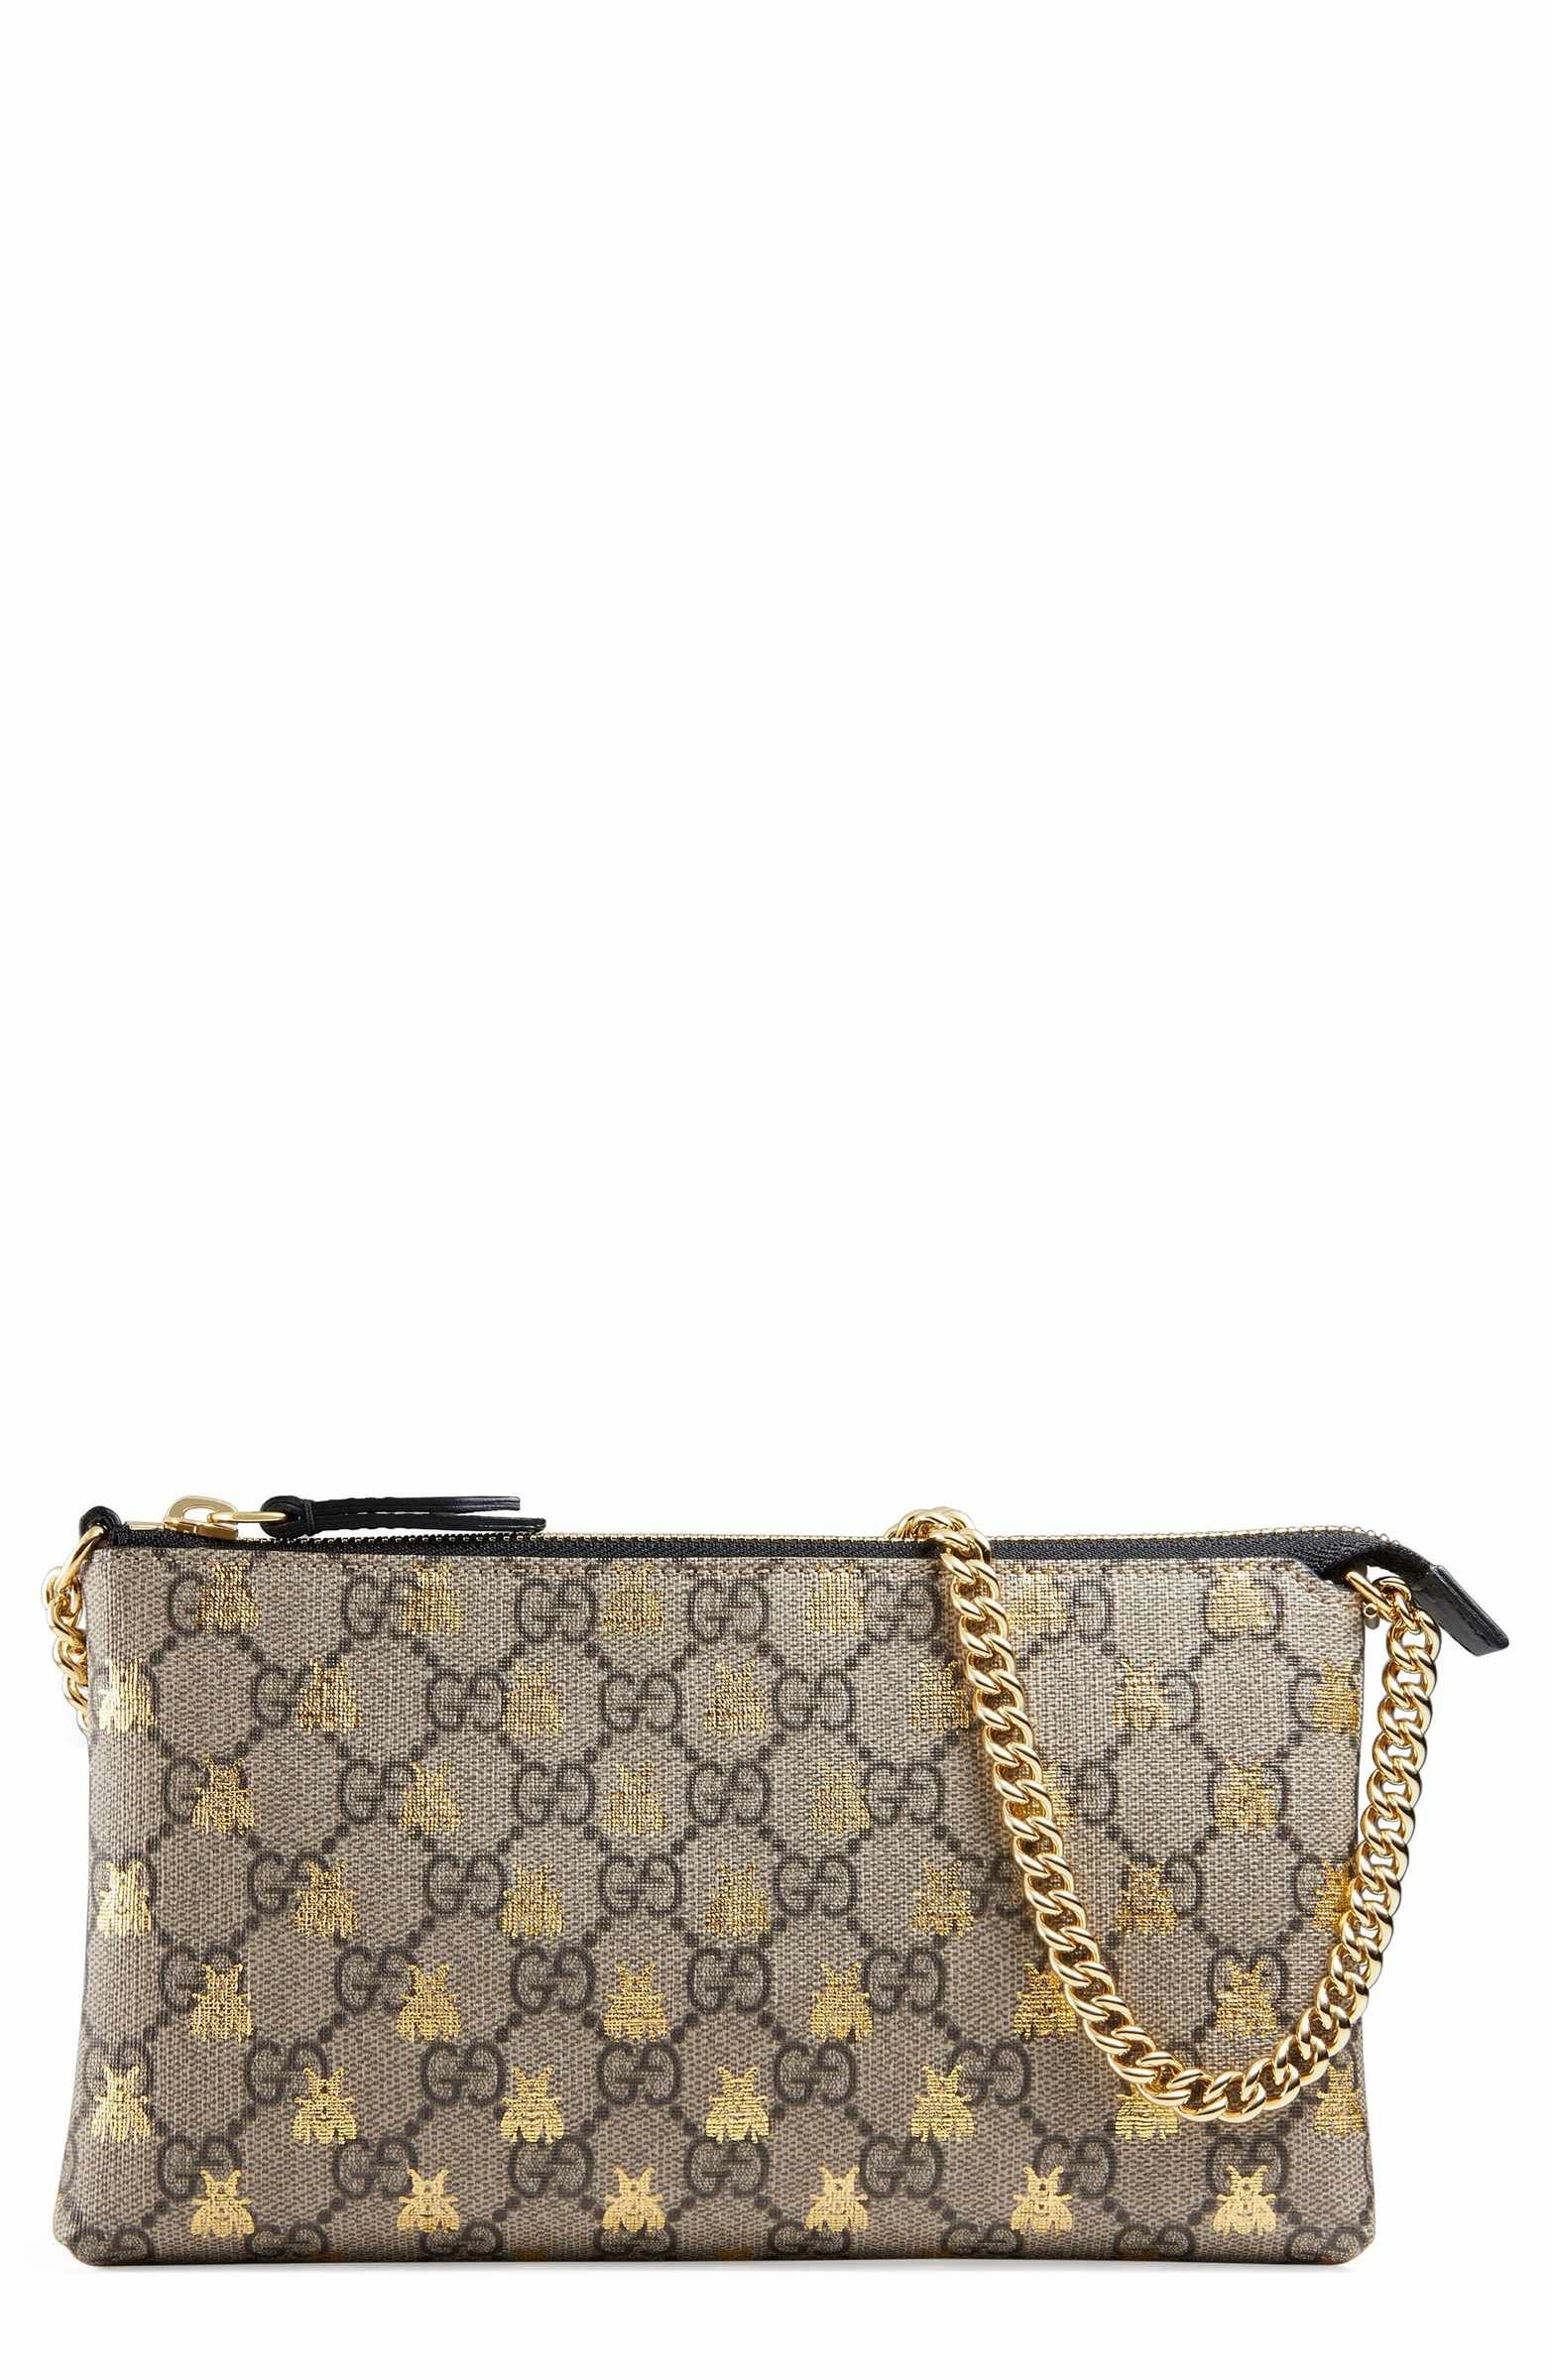 ac6b51687d7 Main Image - Gucci Linea Bee GG Supreme Wrist Wallet